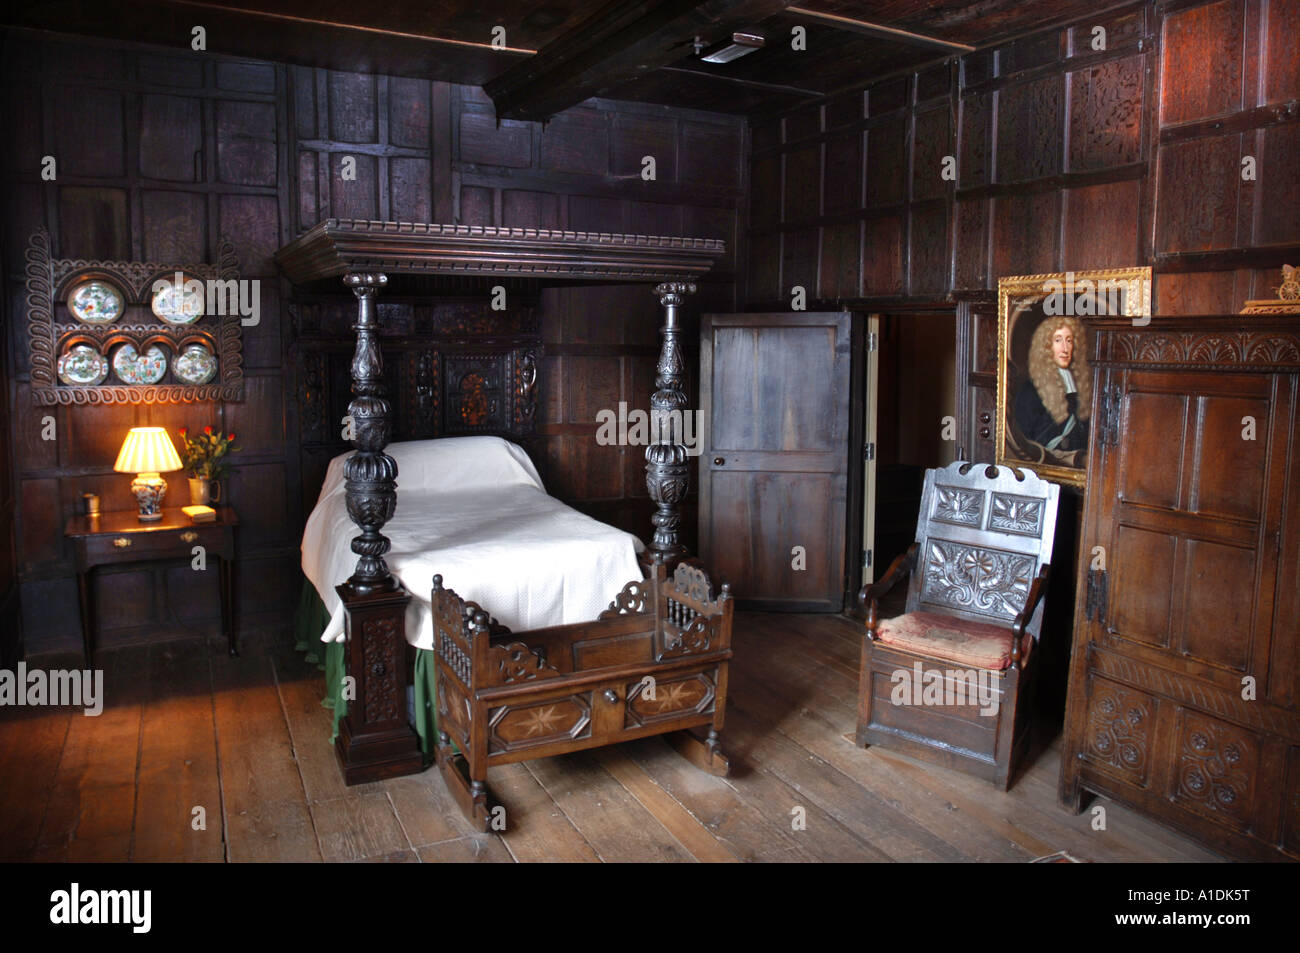 THE ELIZABETHAN BEDCHAMBER IN THE GATEHOUSE OF KENILWORTH CASTLE UK WHICH WAS RESTORED WITH THE HELP OF OLD PHOTOGRAPHS - Stock Image